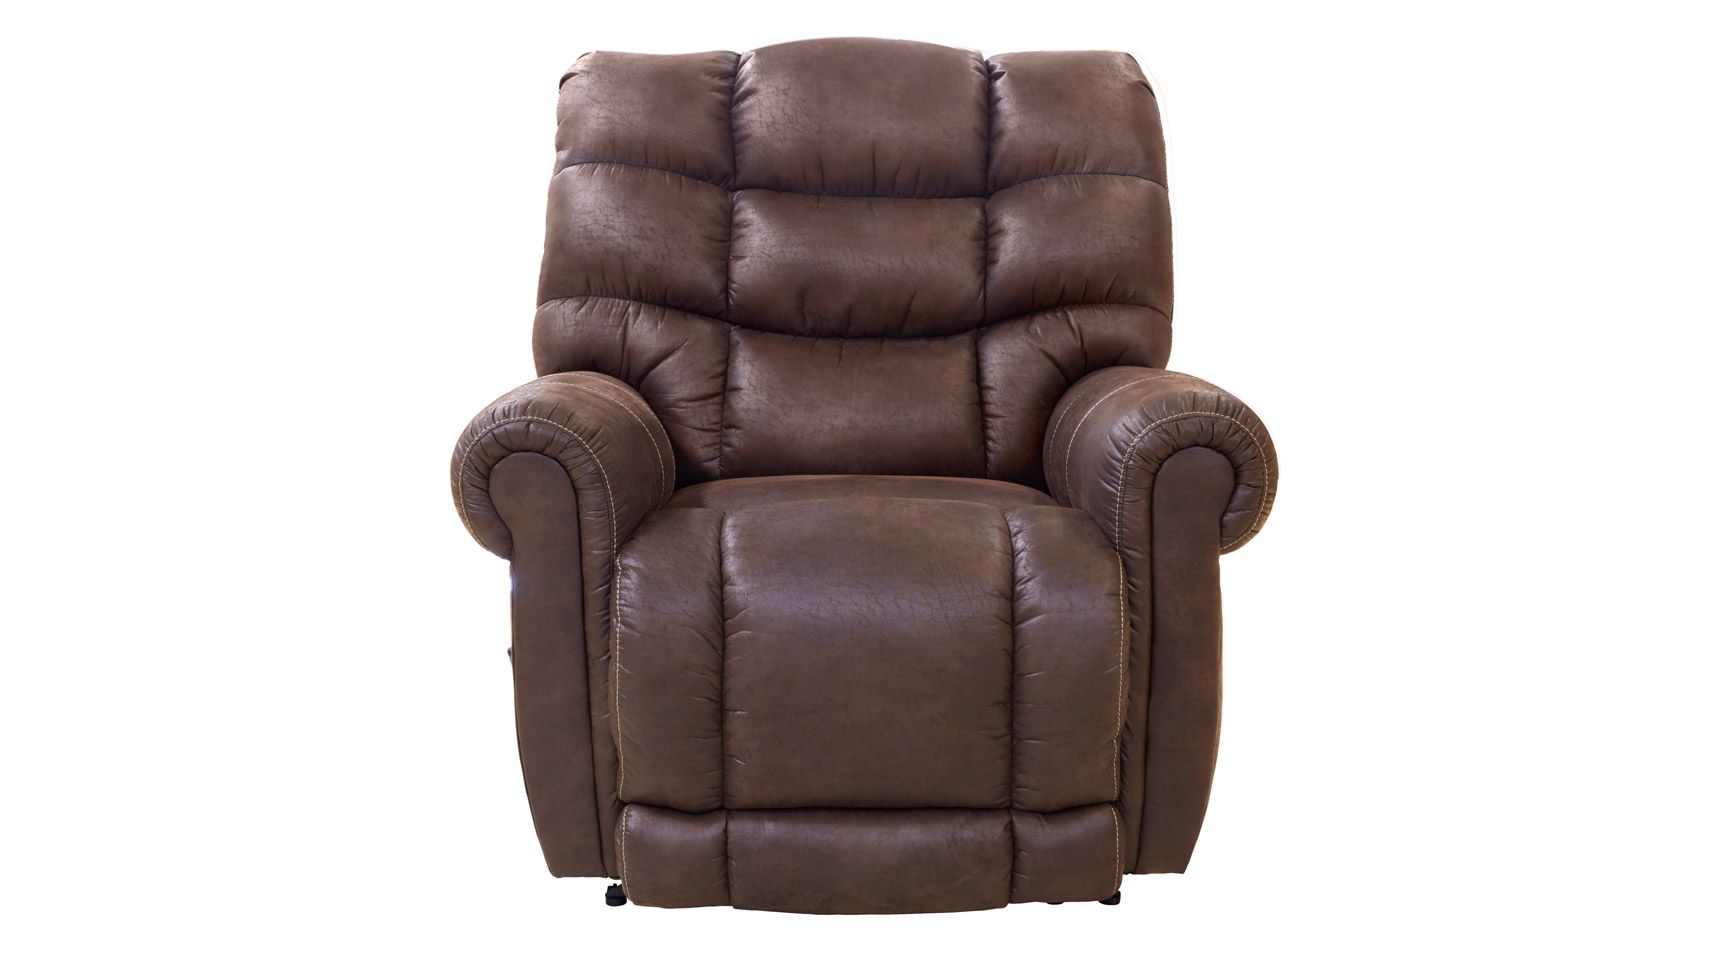 Chairs For Tall Man Tank Sable Chocolate Big Man Recliner